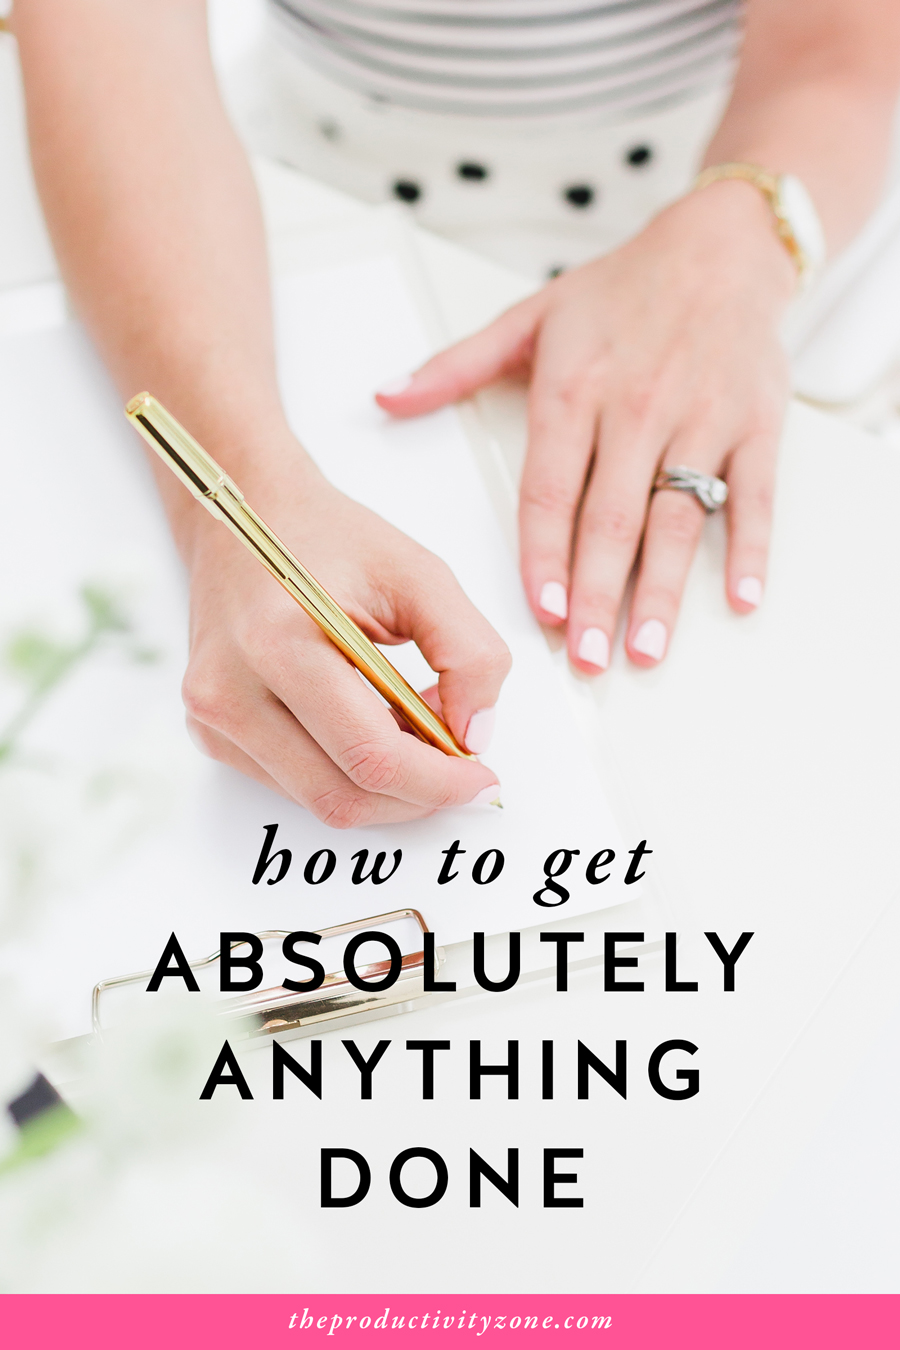 How to get absolutely *anything* done in 3 simple steps on The Productivity Zone!!